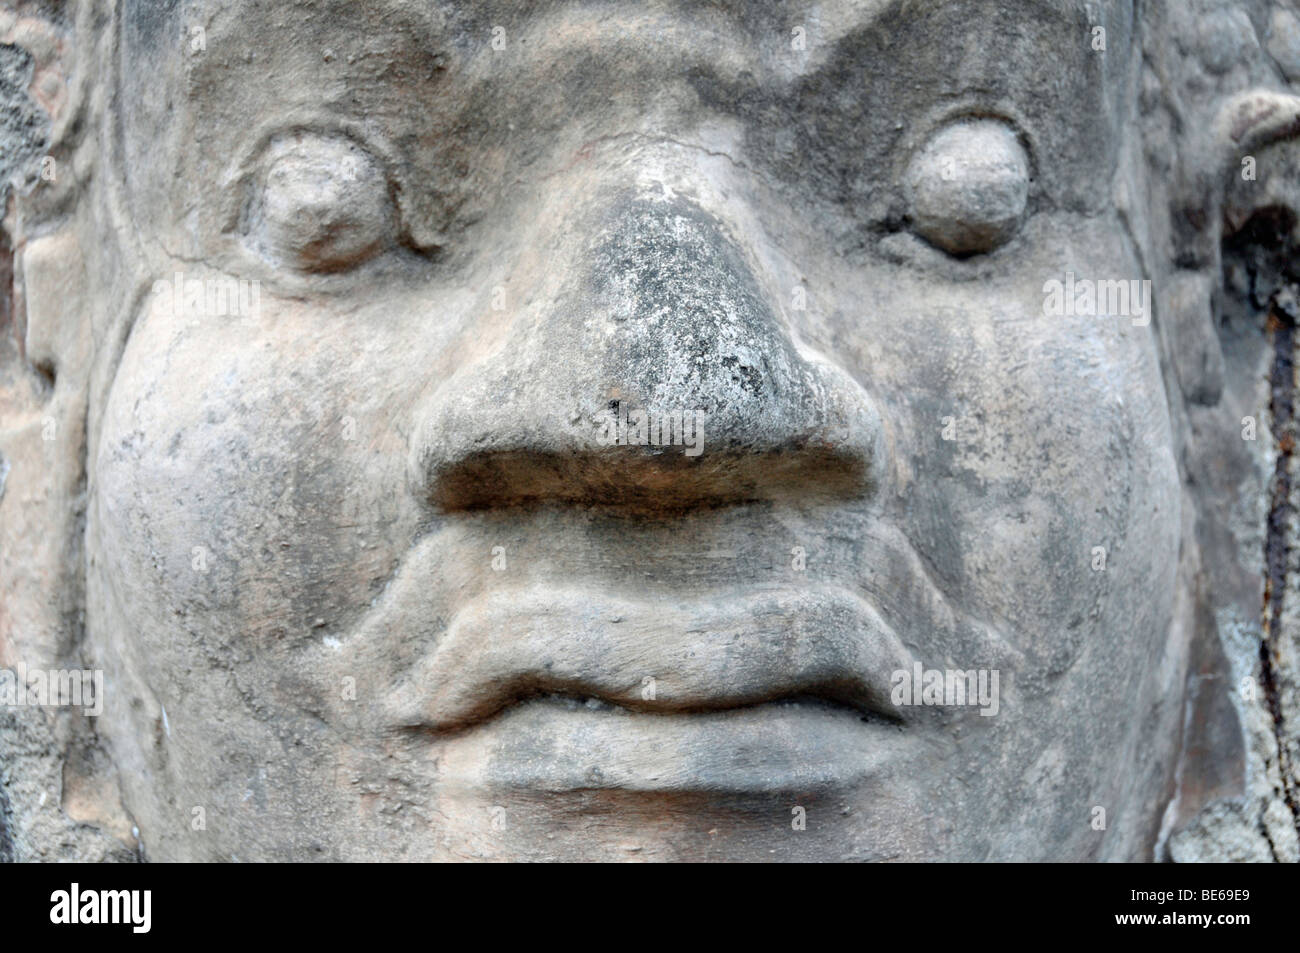 One of 54 divine, fearsome stone creatures flanking the access to the entrance gates of Angkor Thom, Angkor Wat, - Stock Image